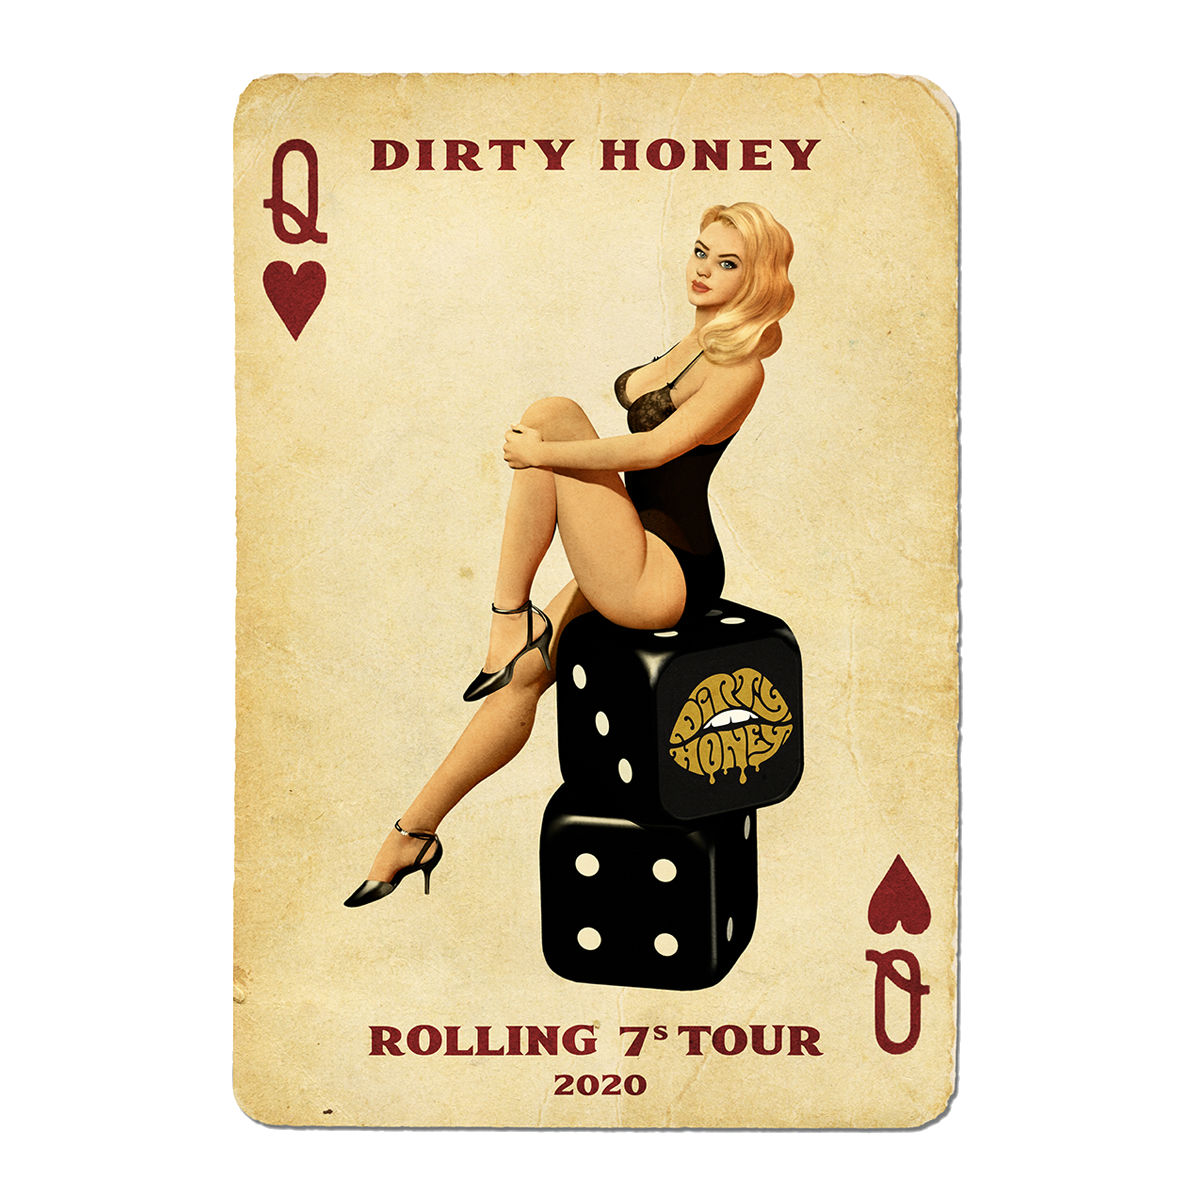 Dirty Honey 2020 Tour Poster